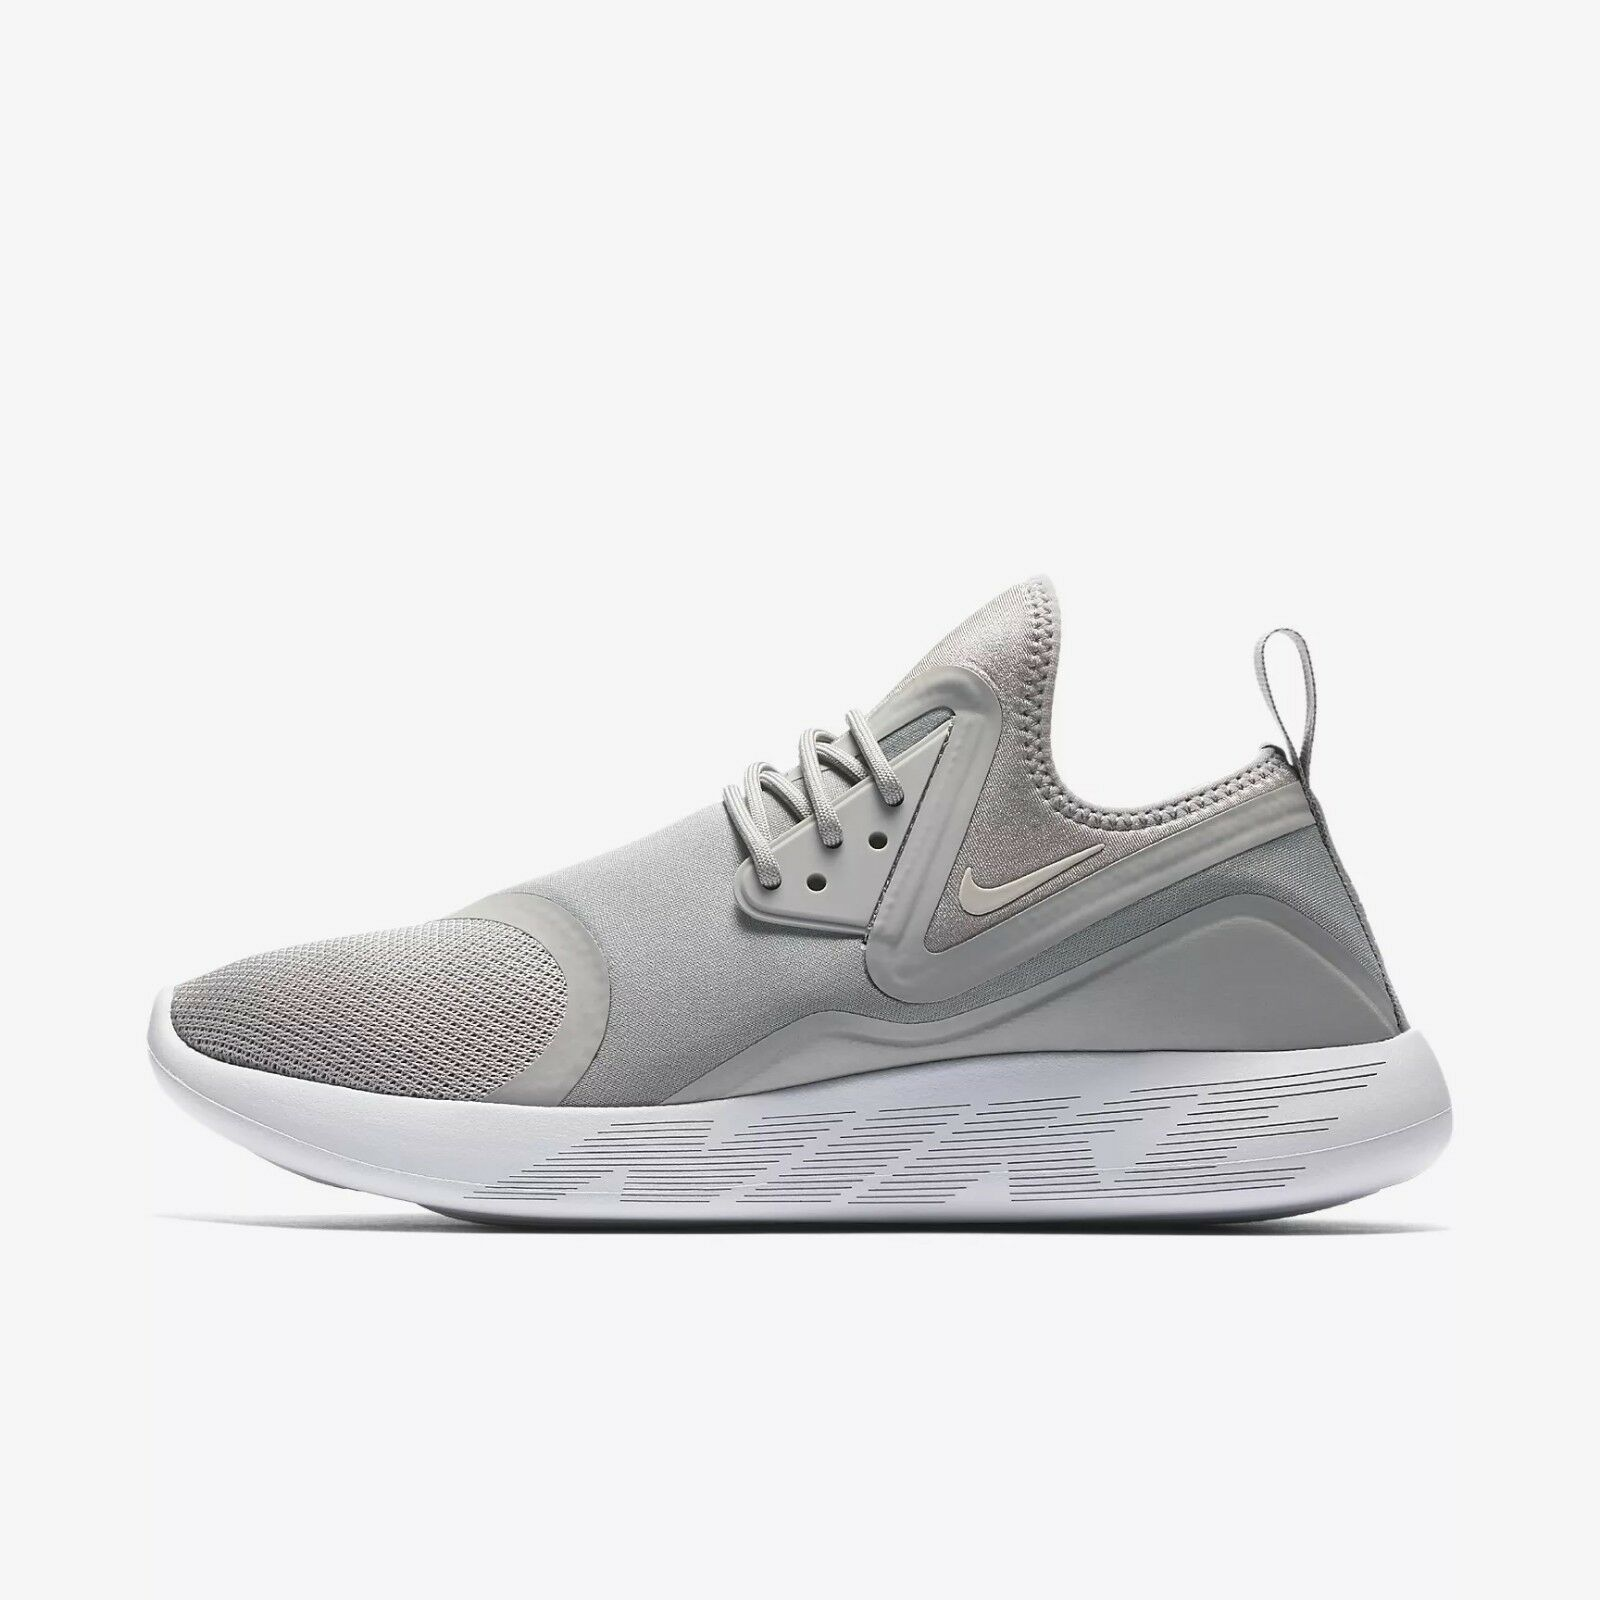 Nike LunarCharge Essential Athletic shoes US 8.5 running epic react free streak